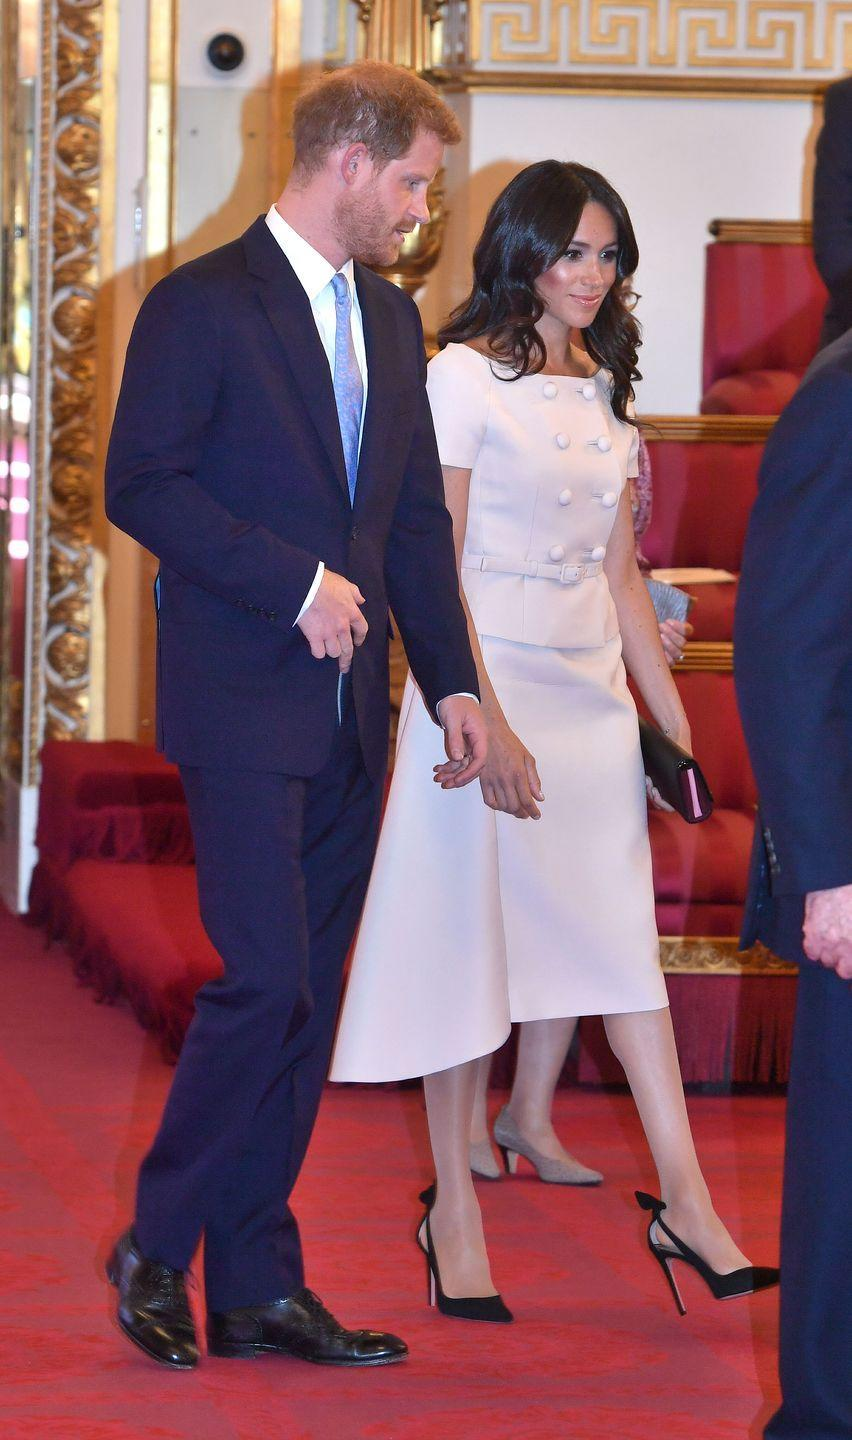 "<p>Meghan wore <a href=""https://www.townandcountrymag.com/style/fashion-trends/a21948625/meghan-markle-pink-dress-queen-young-leaders-awards-2018/"" rel=""nofollow noopener"" target=""_blank"" data-ylk=""slk:a gorgeous pink dress by Prada"" class=""link rapid-noclick-resp"">a gorgeous pink dress by Prada</a> to the Queen's Young Leaders Awards ceremony, held at Buckingham Palace. The Duchess completed her outfit with a Prada bag and a pair of black heels by <a href=""https://shop.nordstrom.com/s/aquazzura-deneuve-bow-pointy-toe-pump-women/4948641"" rel=""nofollow noopener"" target=""_blank"" data-ylk=""slk:Aquazzura, which are still available to purchase."" class=""link rapid-noclick-resp"">Aquazzura, which are still available to purchase.</a></p><p><a class=""link rapid-noclick-resp"" href=""https://go.redirectingat.com?id=74968X1596630&url=https%3A%2F%2Fshop.nordstrom.com%2Fs%2Faquazzura-deneuve-bow-pointy-toe-pump-women%2F4948641&sref=https%3A%2F%2Fwww.townandcountrymag.com%2Fstyle%2Ffashion-trends%2Fg3272%2Fmeghan-markle-preppy-style%2F"" rel=""nofollow noopener"" target=""_blank"" data-ylk=""slk:SHOP NOW"">SHOP NOW</a> <em>Aquazzura Deneuve Bow Pointy Toe Pump, $750</em></p>"